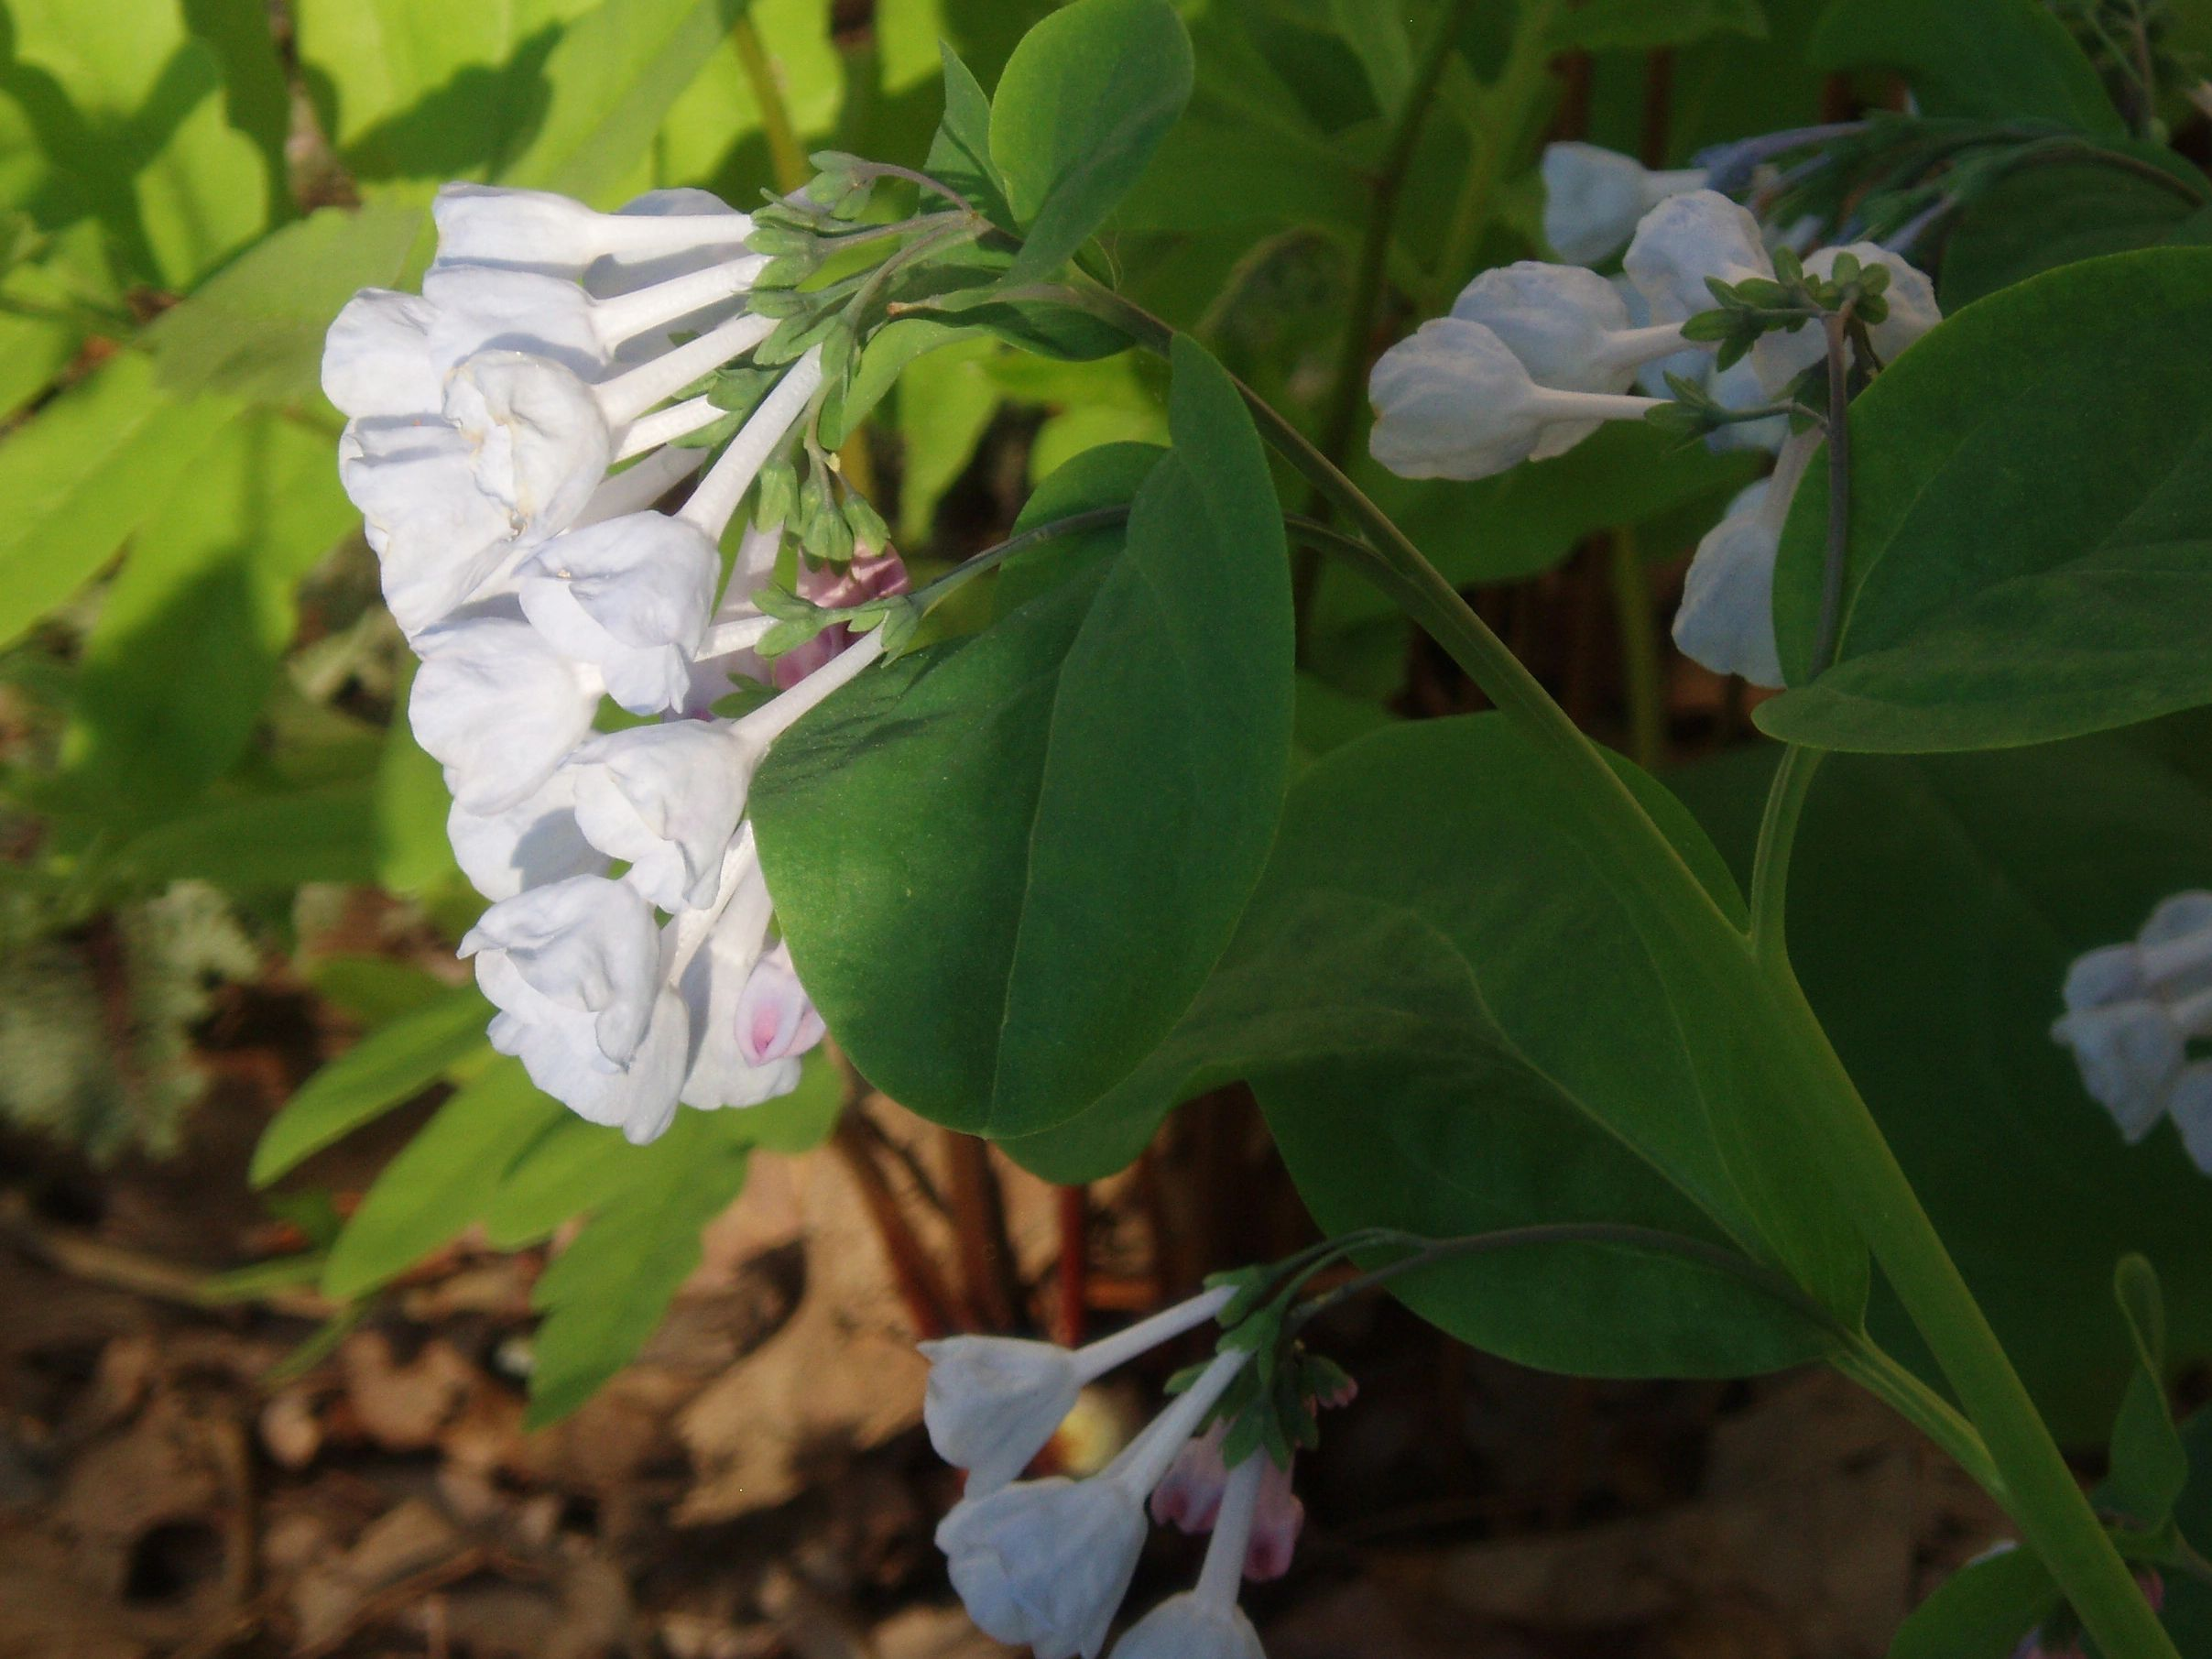 "{""blocks"":[{""key"":""60dbg"",""text"":"" Mertensia virginica Virginia Bluebells - potted plants email john@easywildflowers.com"",""type"":""unstyled"",""depth"":0,""inlineStyleRanges"":[],""entityRanges"":[],""data"":{}}],""entityMap"":{}}"